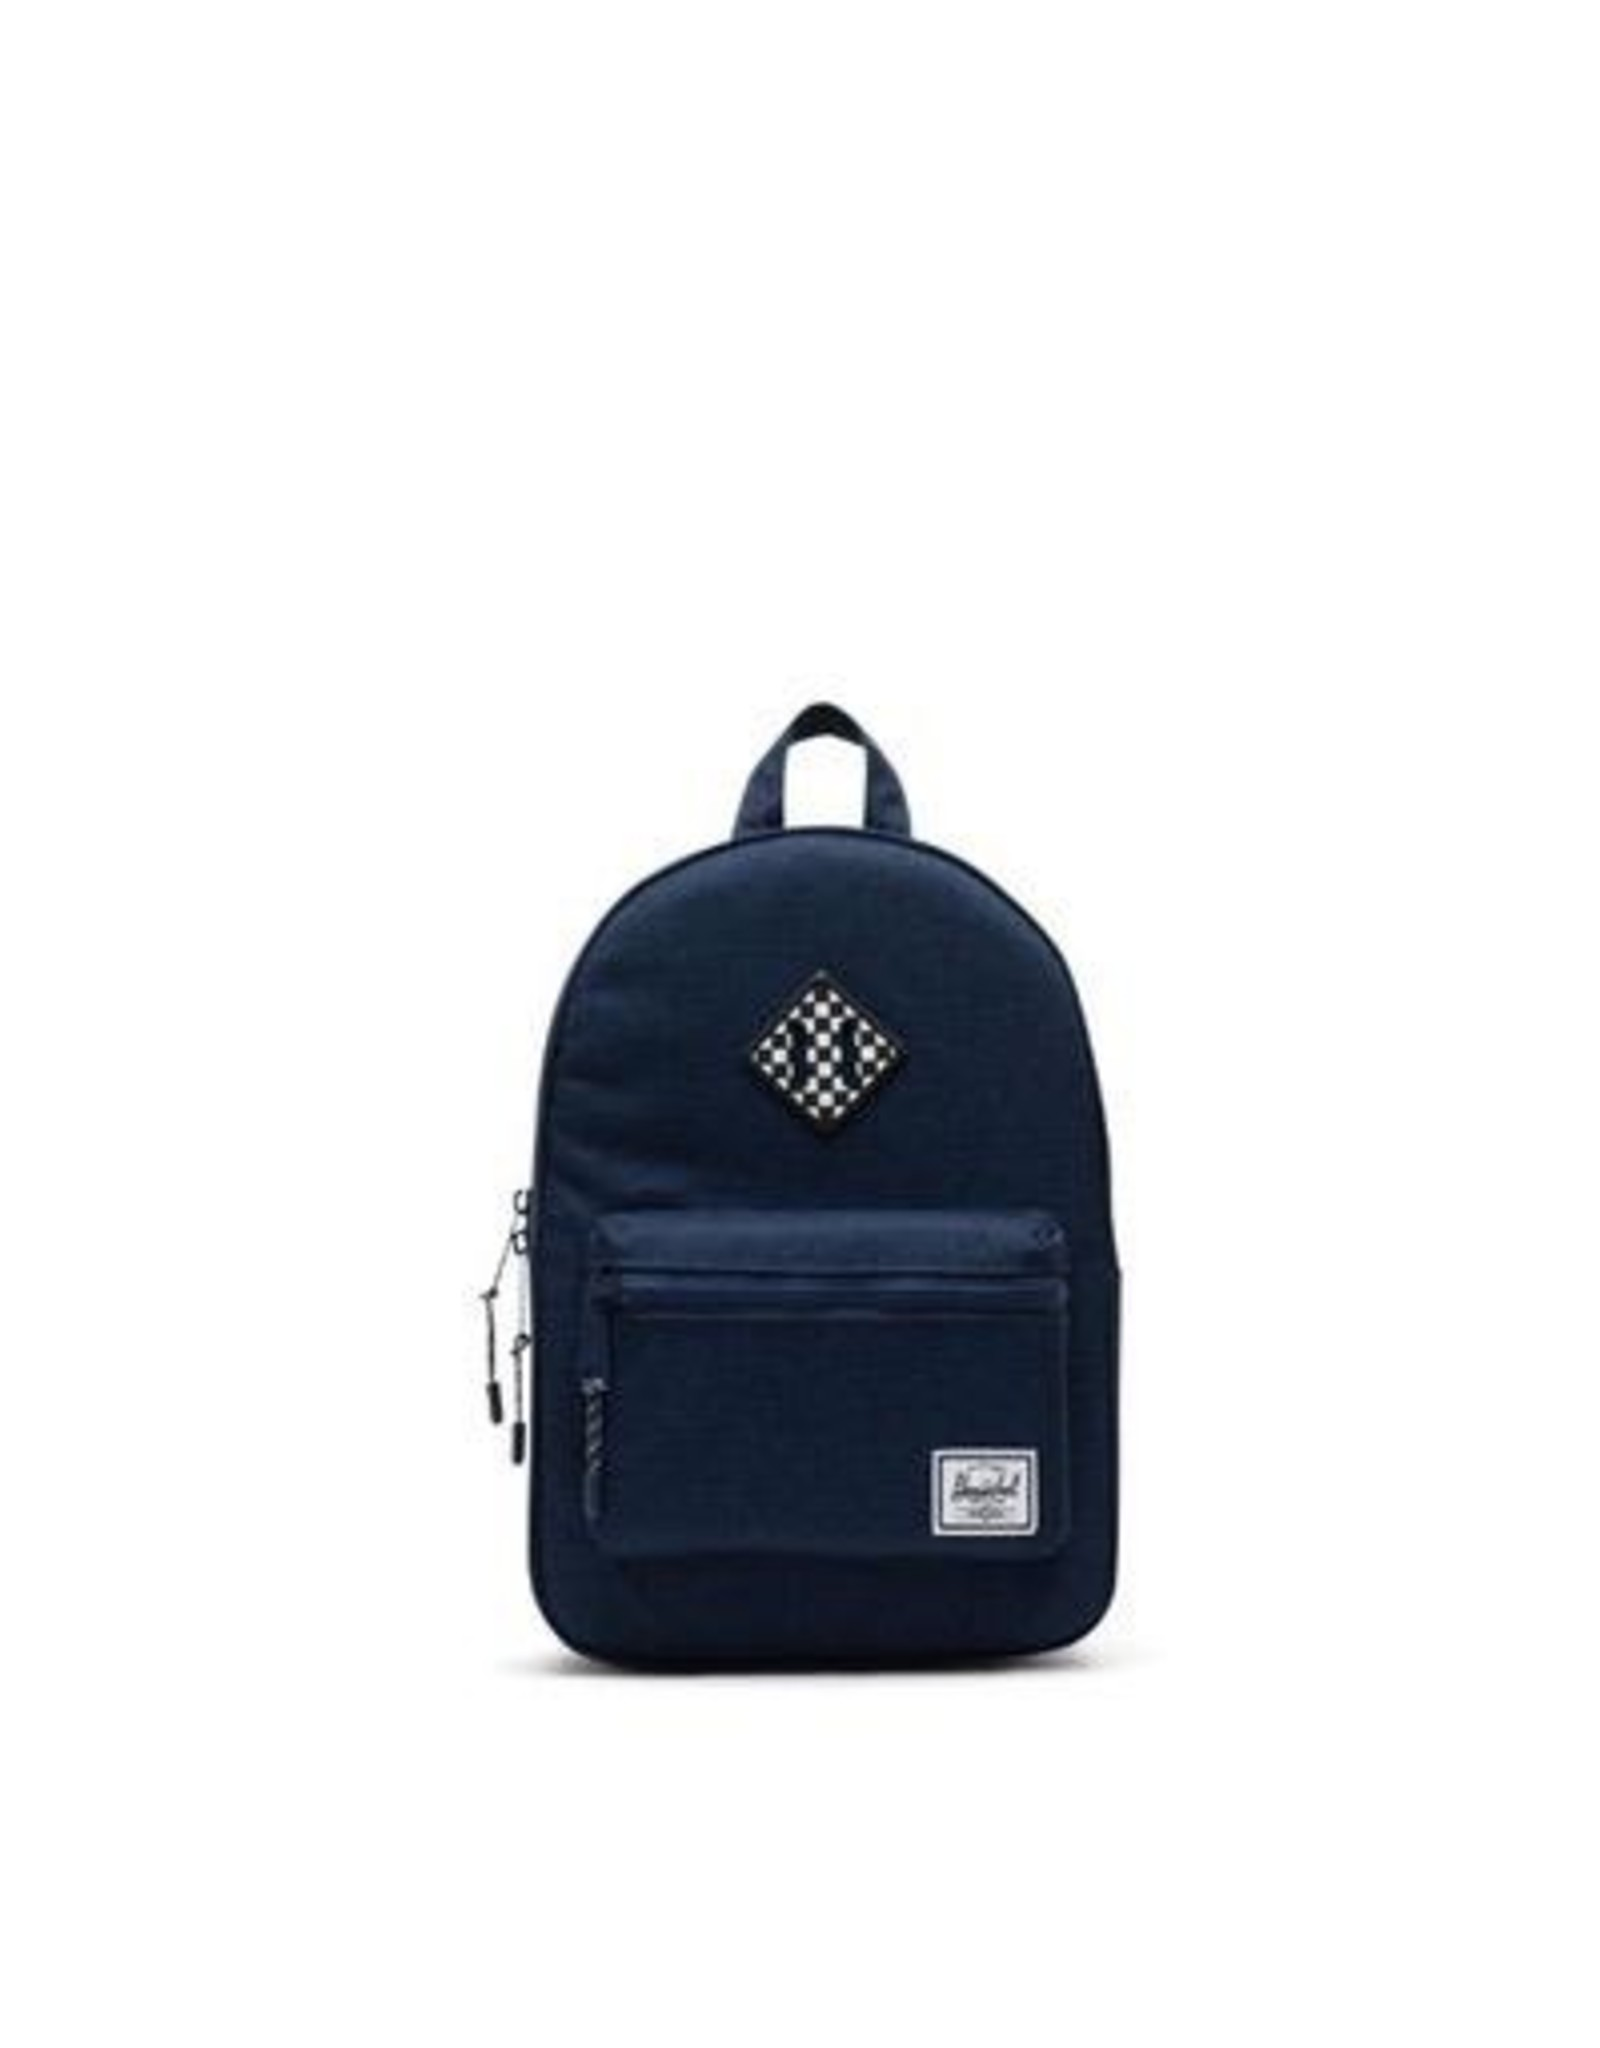 Herschel Supply Co. Heritage Kids Backpack